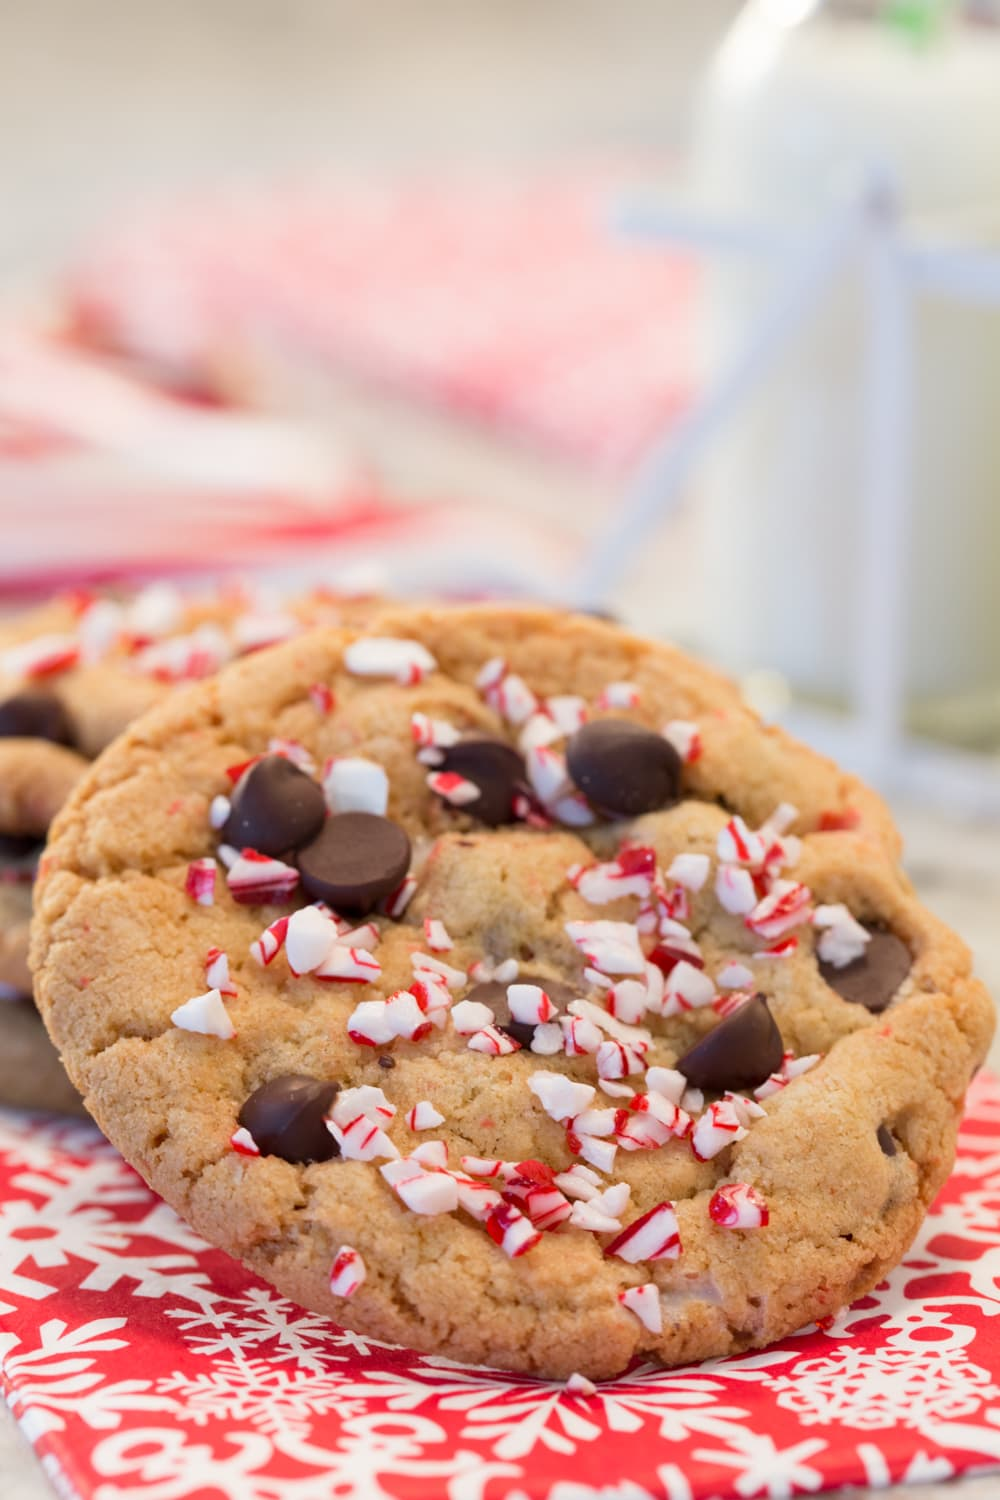 Vertical close up picture of chocolate chip candy cane cookies on a red and white napkin